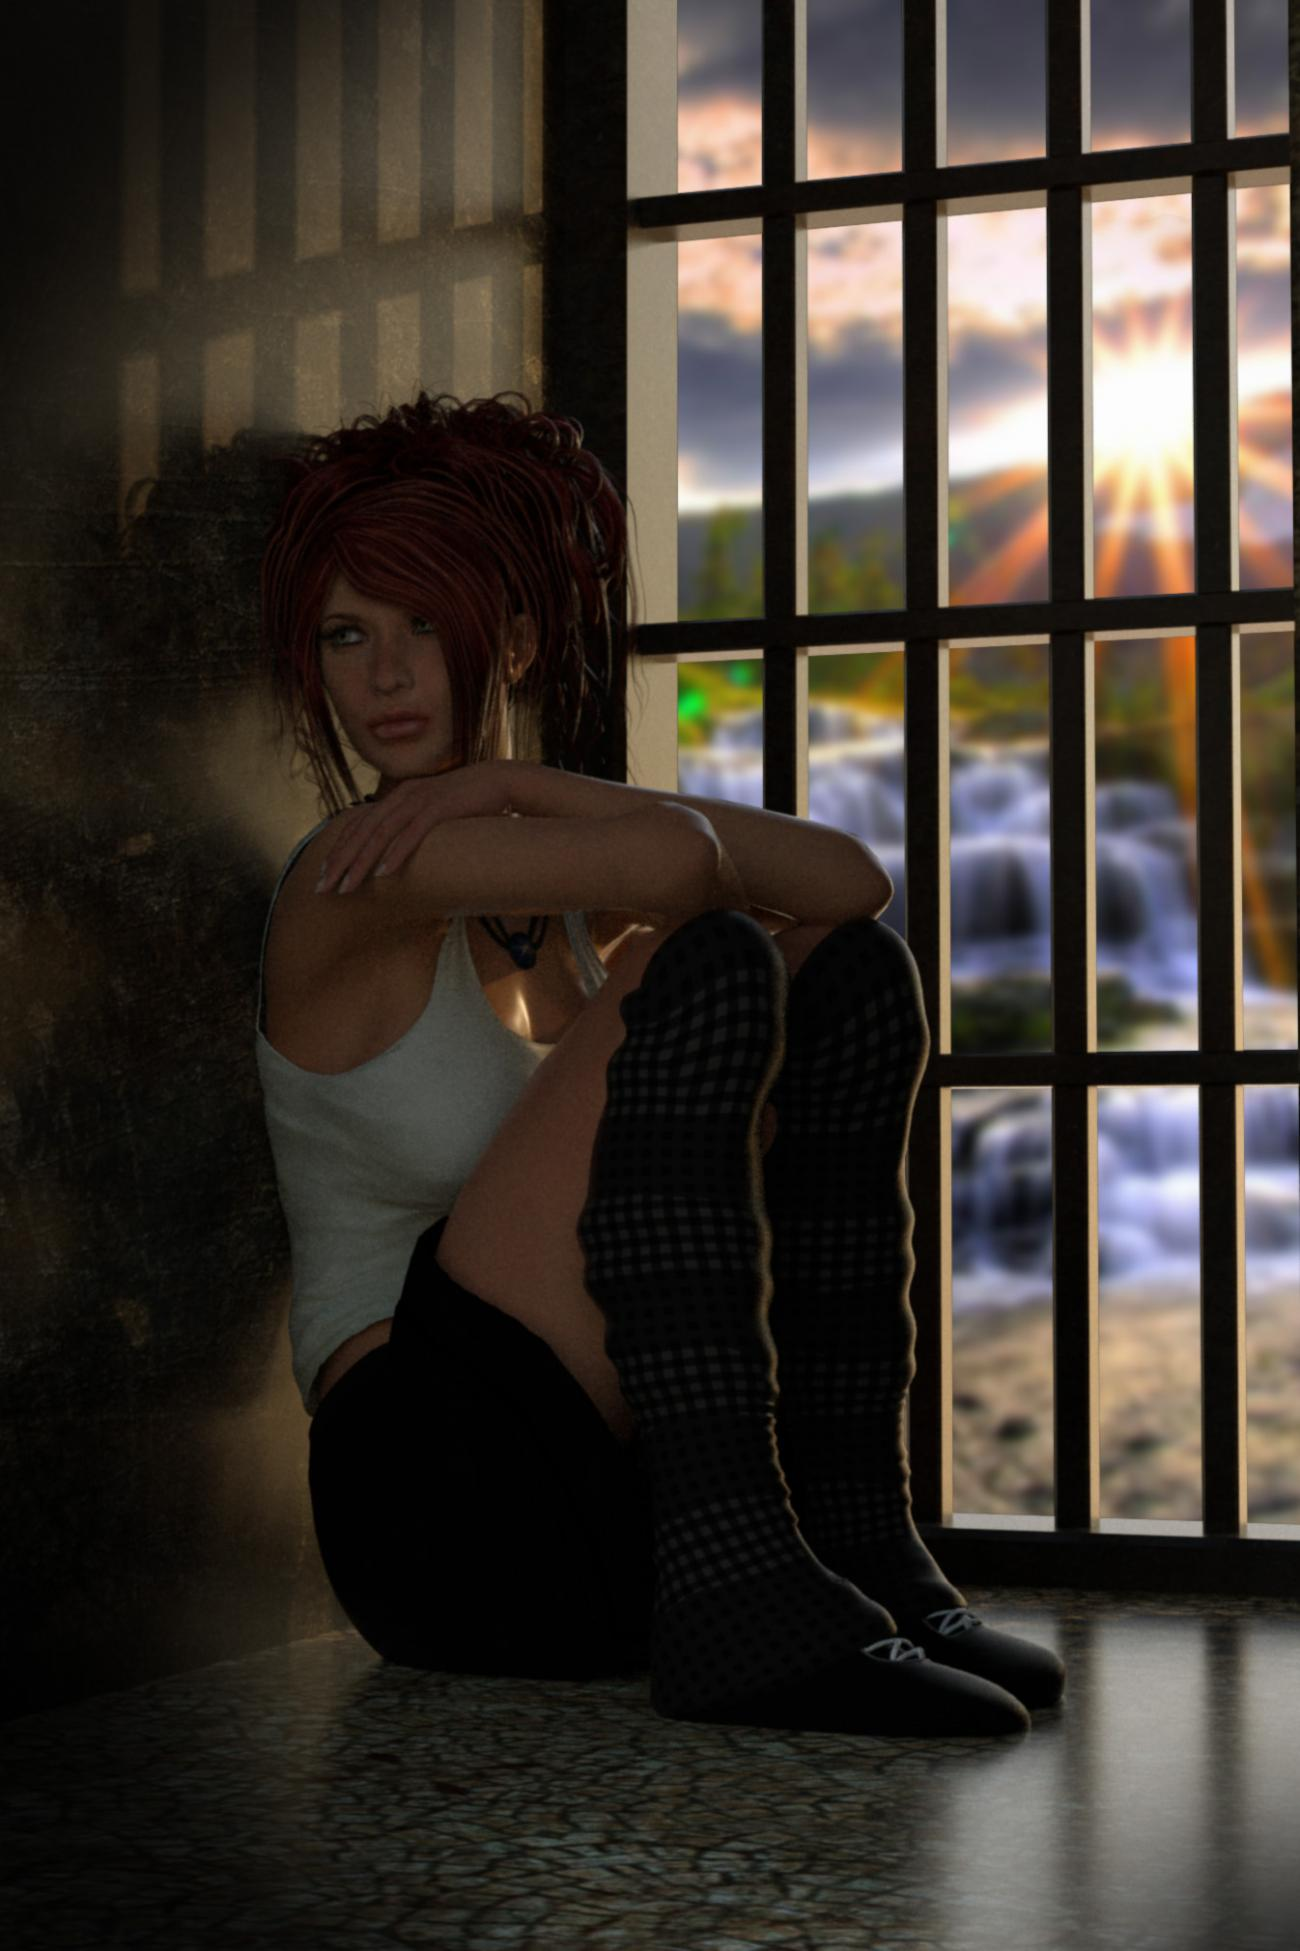 The Window by ARD1